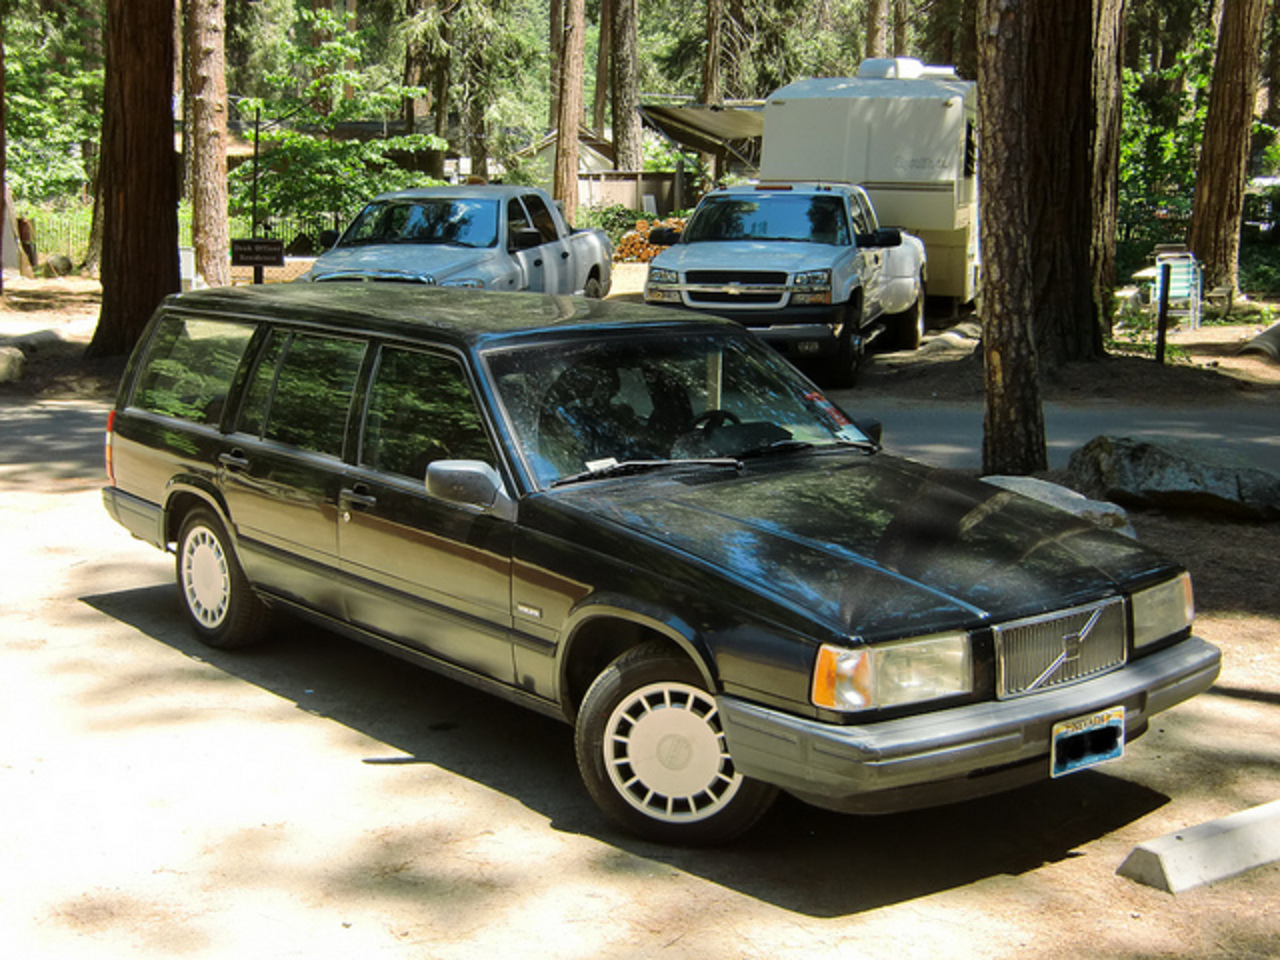 1992 Volvo 740 Wagon | Flickr - Photo Sharing!